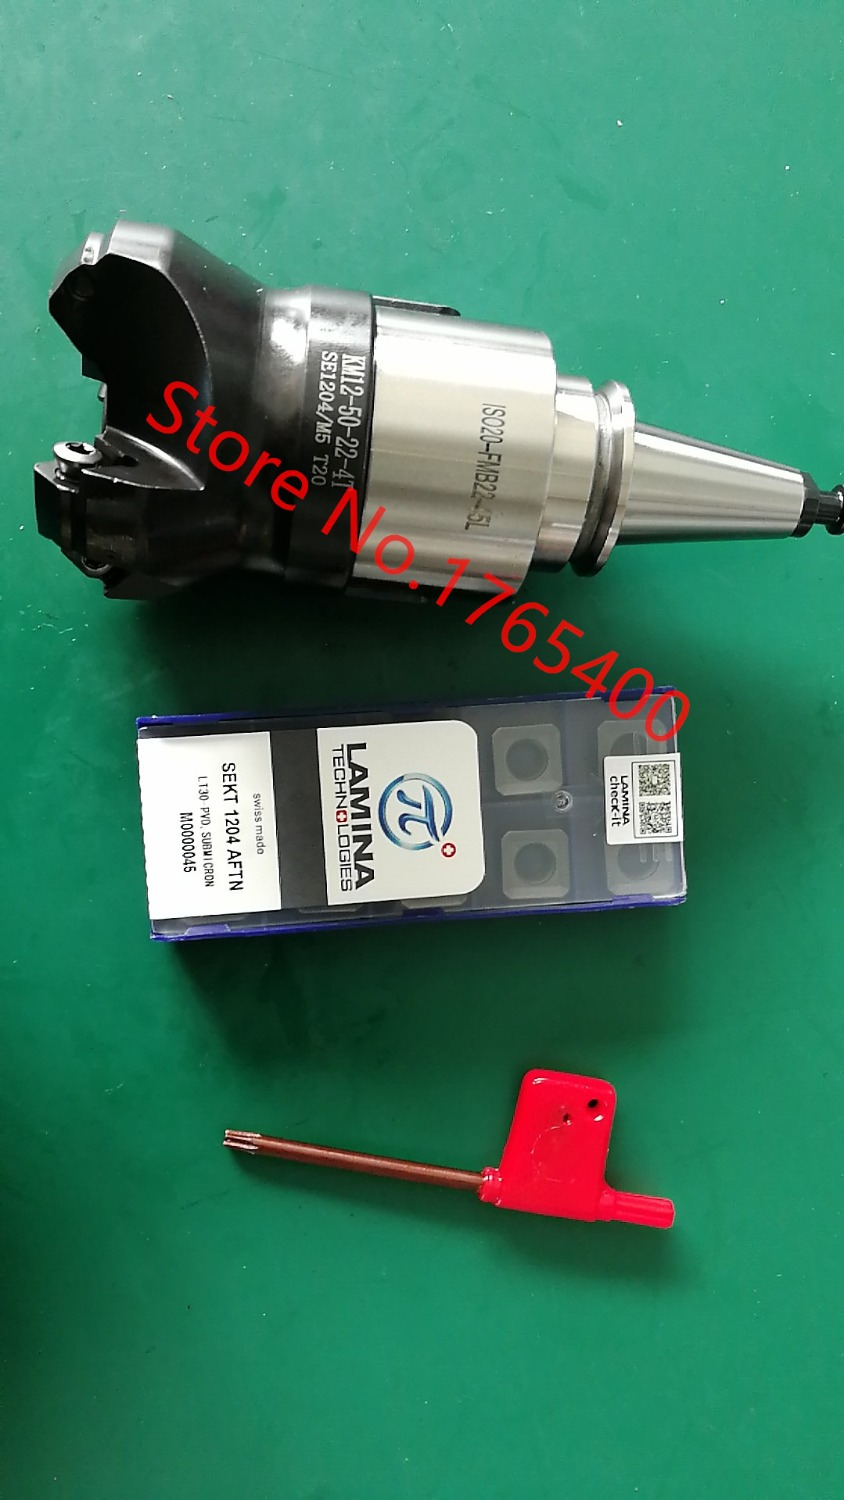 New ISO20 FMB22 45mm M8 holder SE KM12 45 degree face mill cutter KM12 50 22